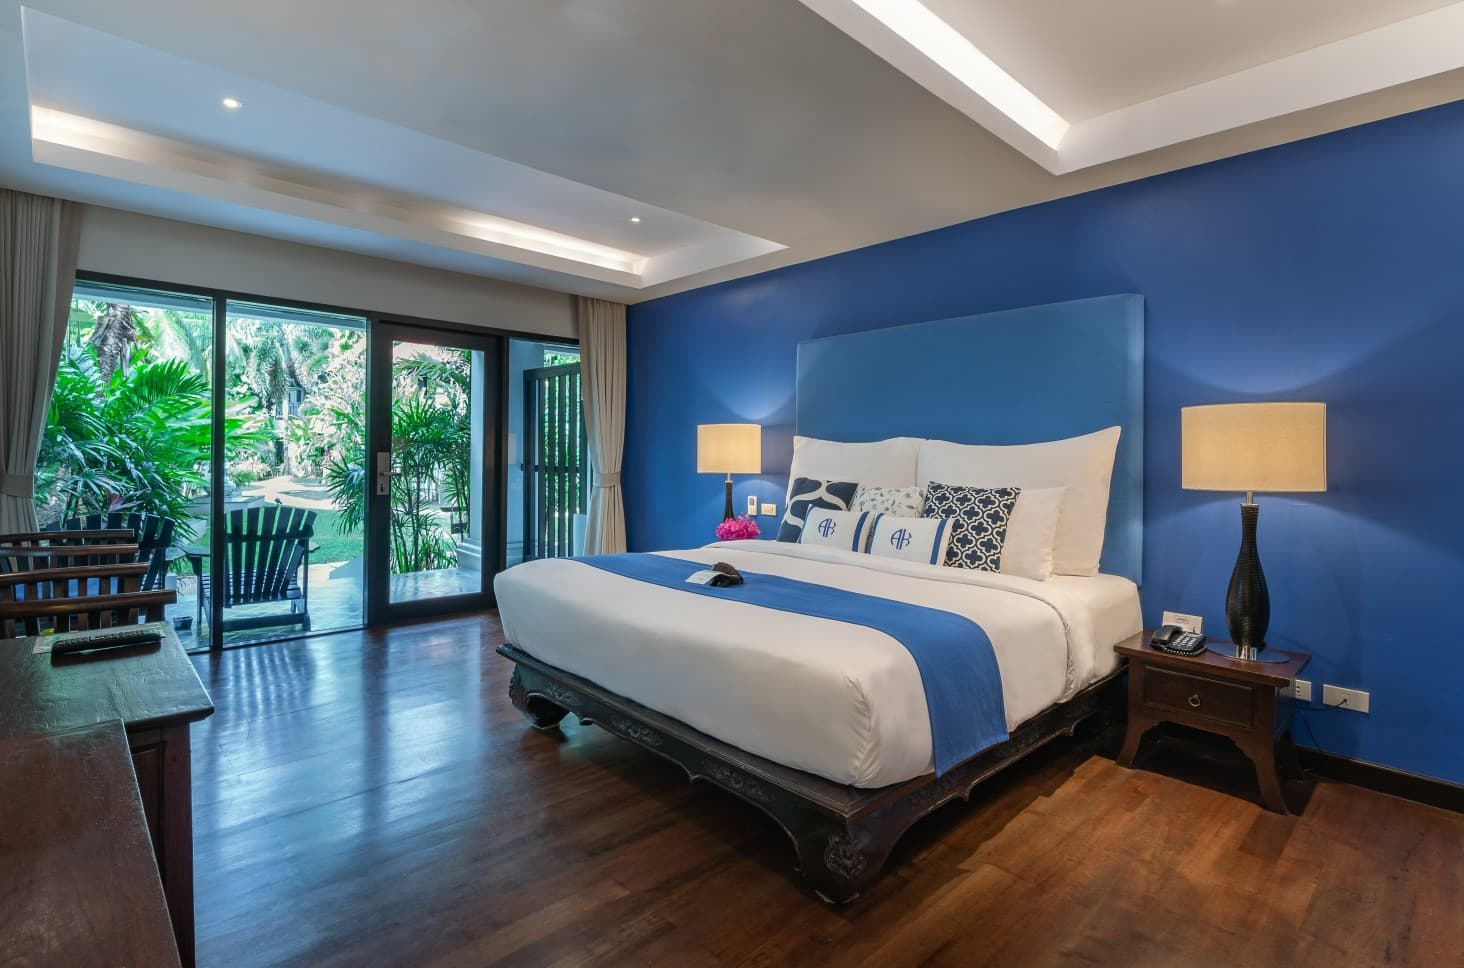 Deluxe Suite with King Size Bed - akyra Beach Resort Phuket